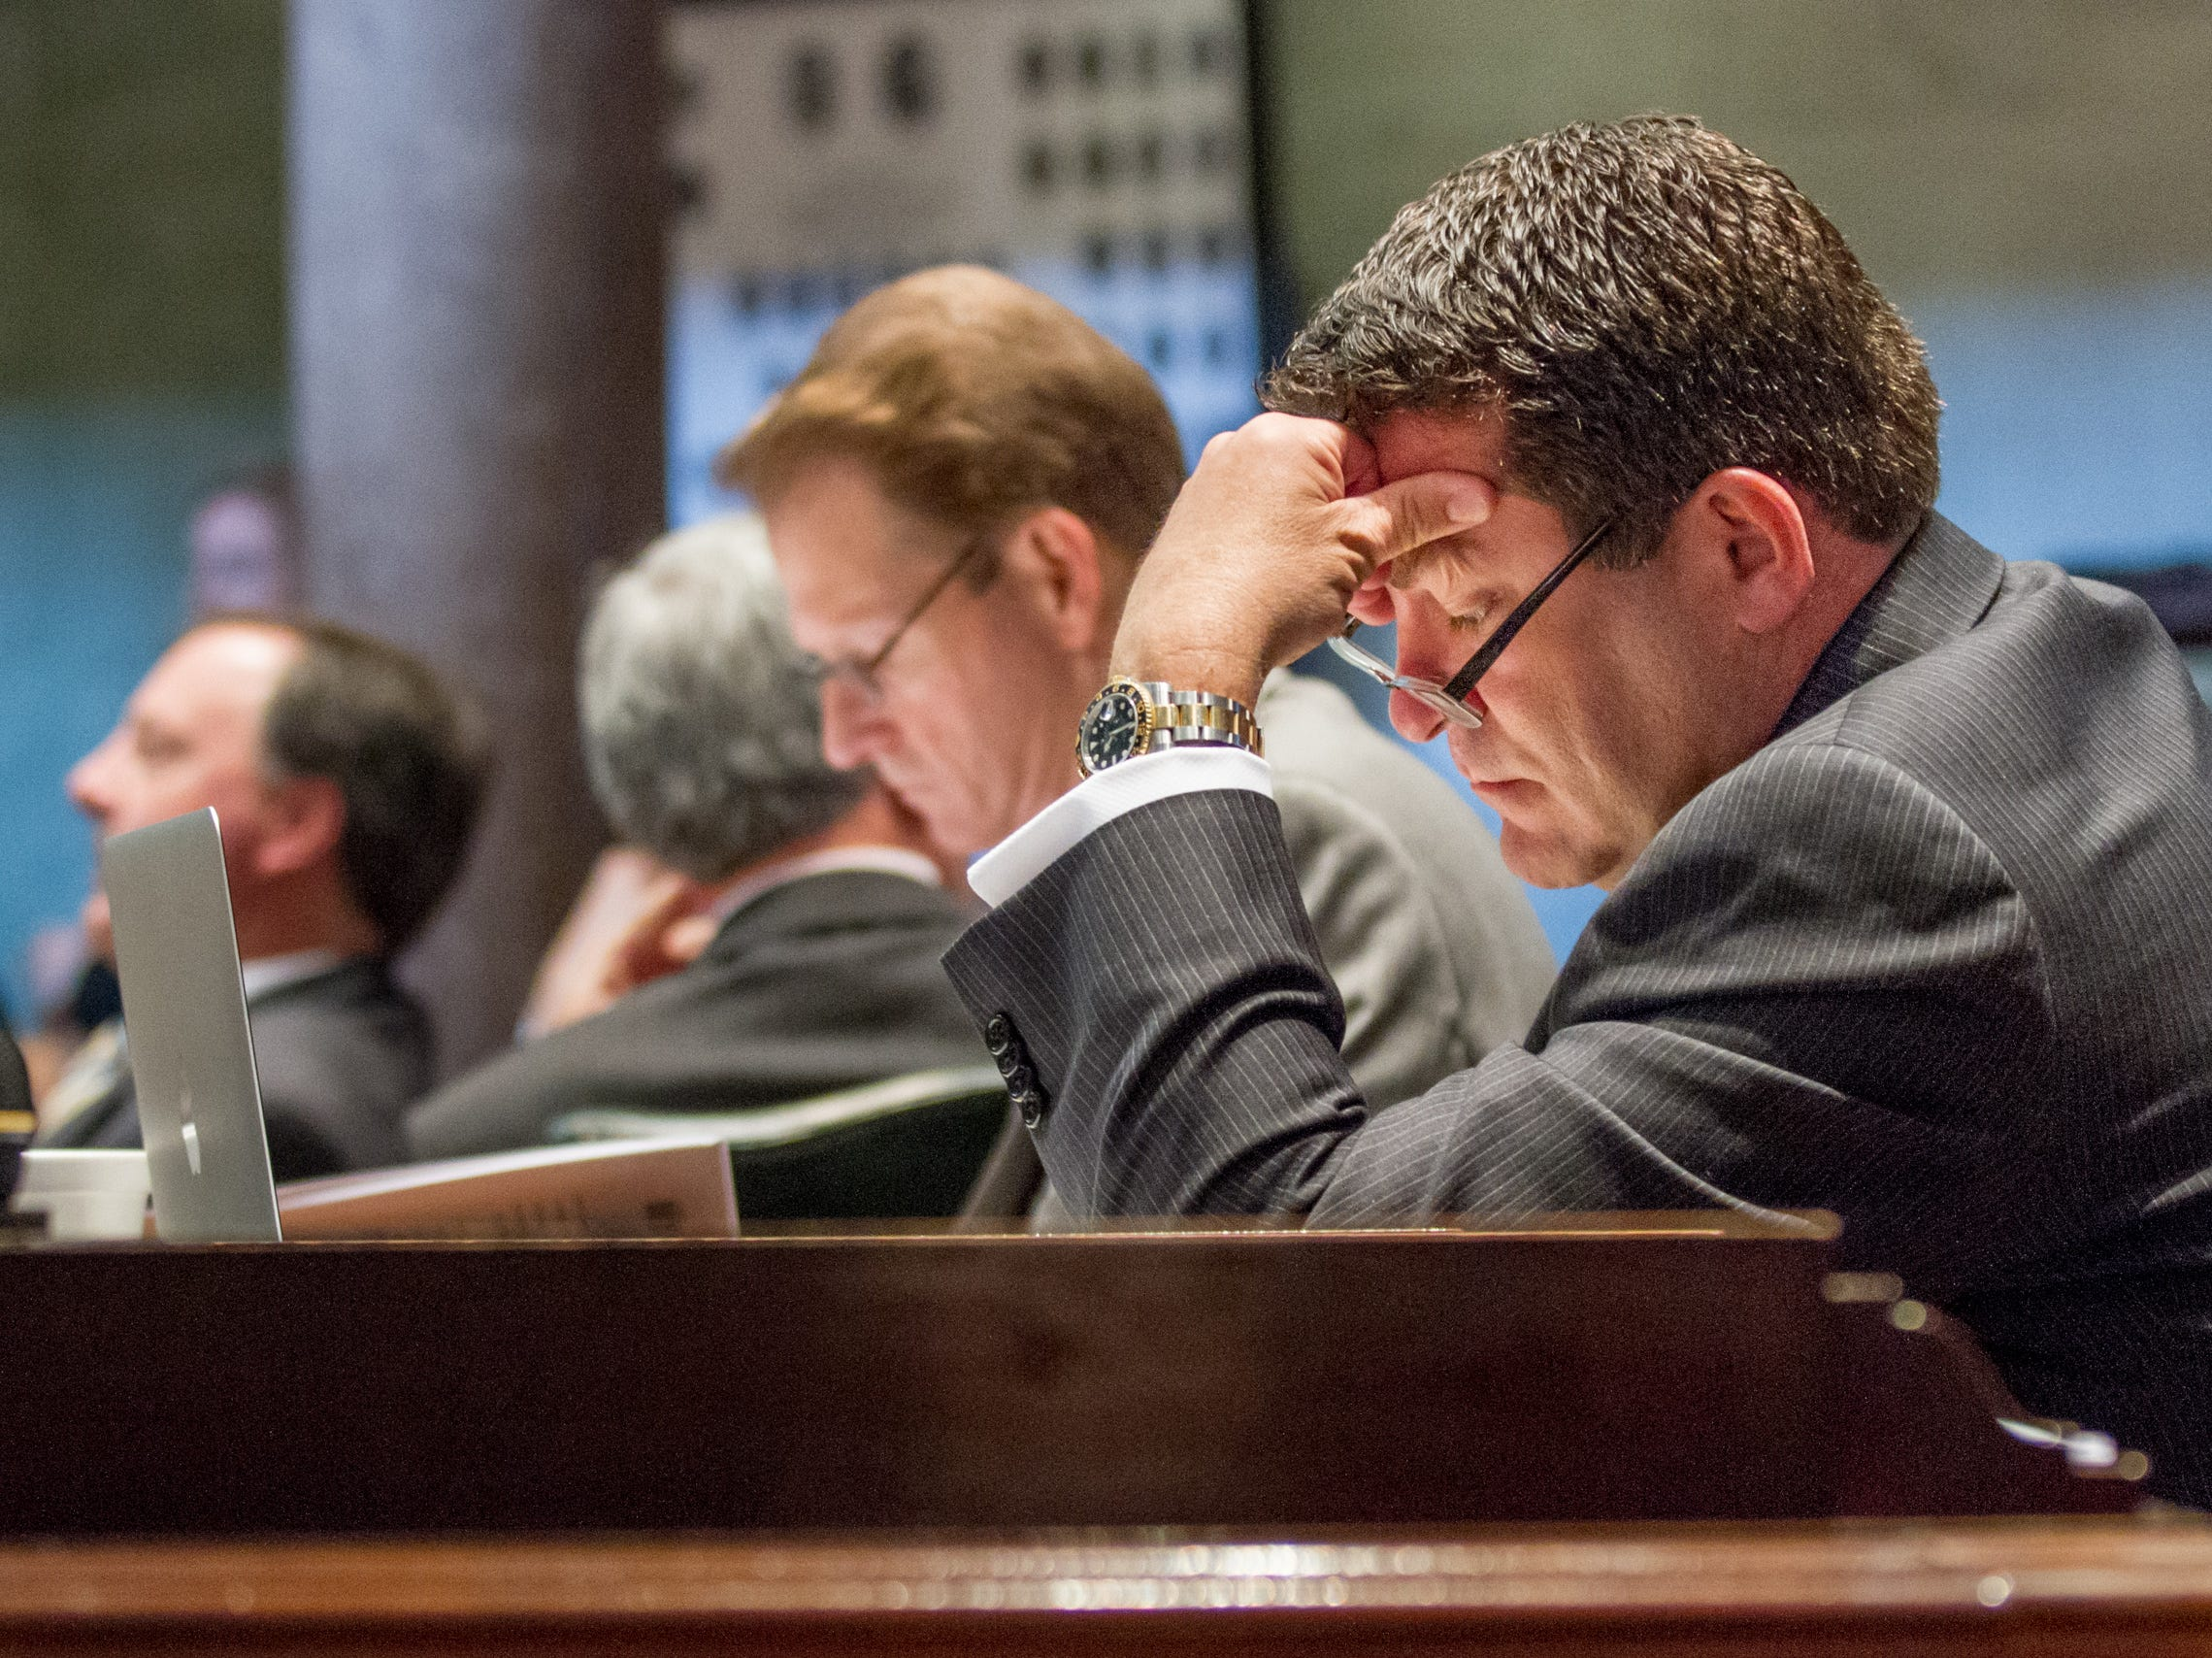 Republican Sen. Mark Green, R-Clarksville, sits at his desk in the Senate chamber in Nashville on April 17, 2013. The chamber earlier approved a resolution sponsored by Green to change the state constitution to shift the power to appoint the state attorney general from the Supreme Court to the General Assembly.